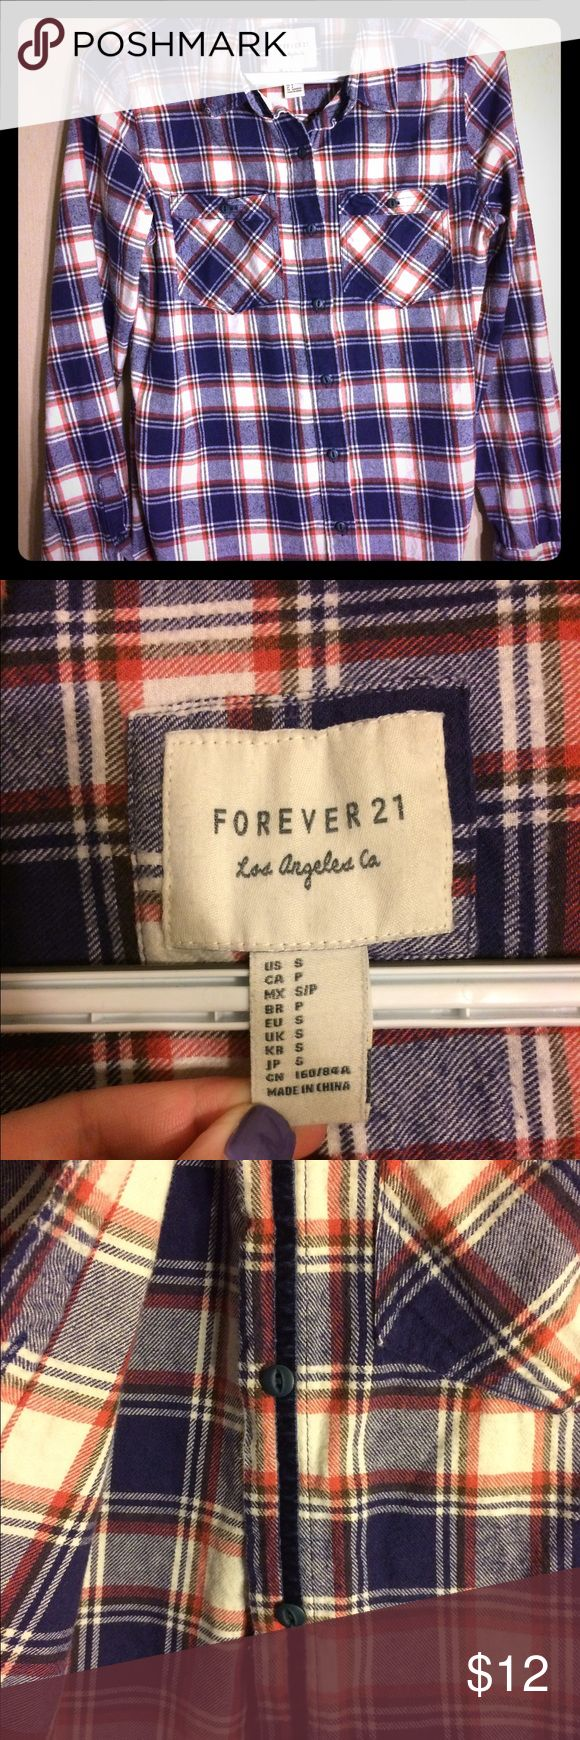 Size Small Forever 21 fleece plaid shirt. Forever 21 plaid fleece shirt; barley worn. Forever 21 Tops Tunics